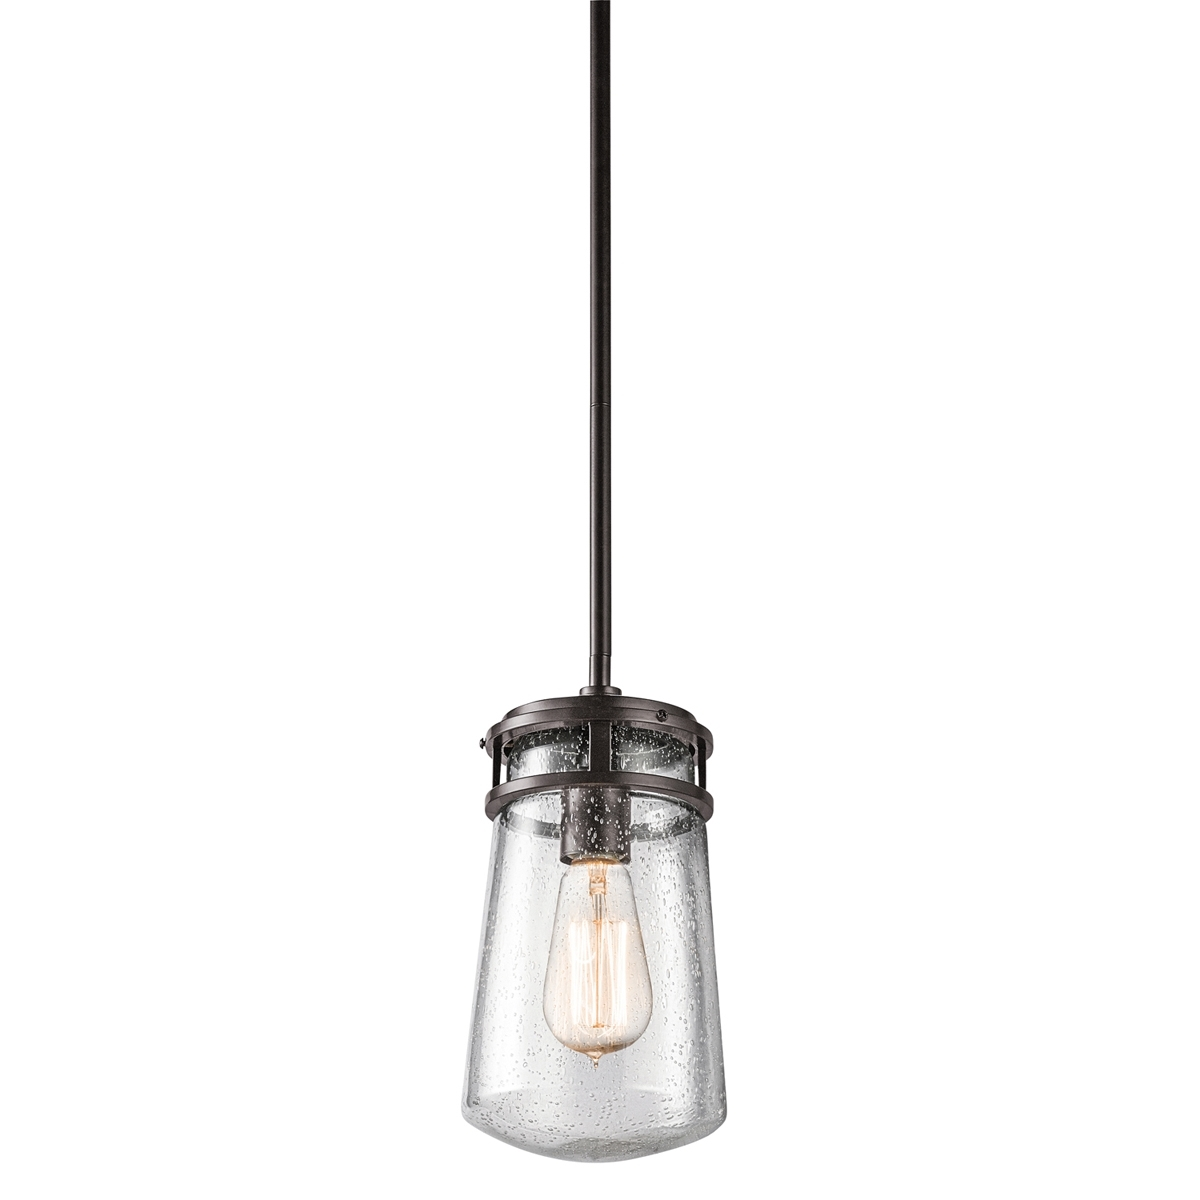 Vintage Outdoor Hanging Lights Within Current Pendant Lighting Ideas (View 19 of 20)